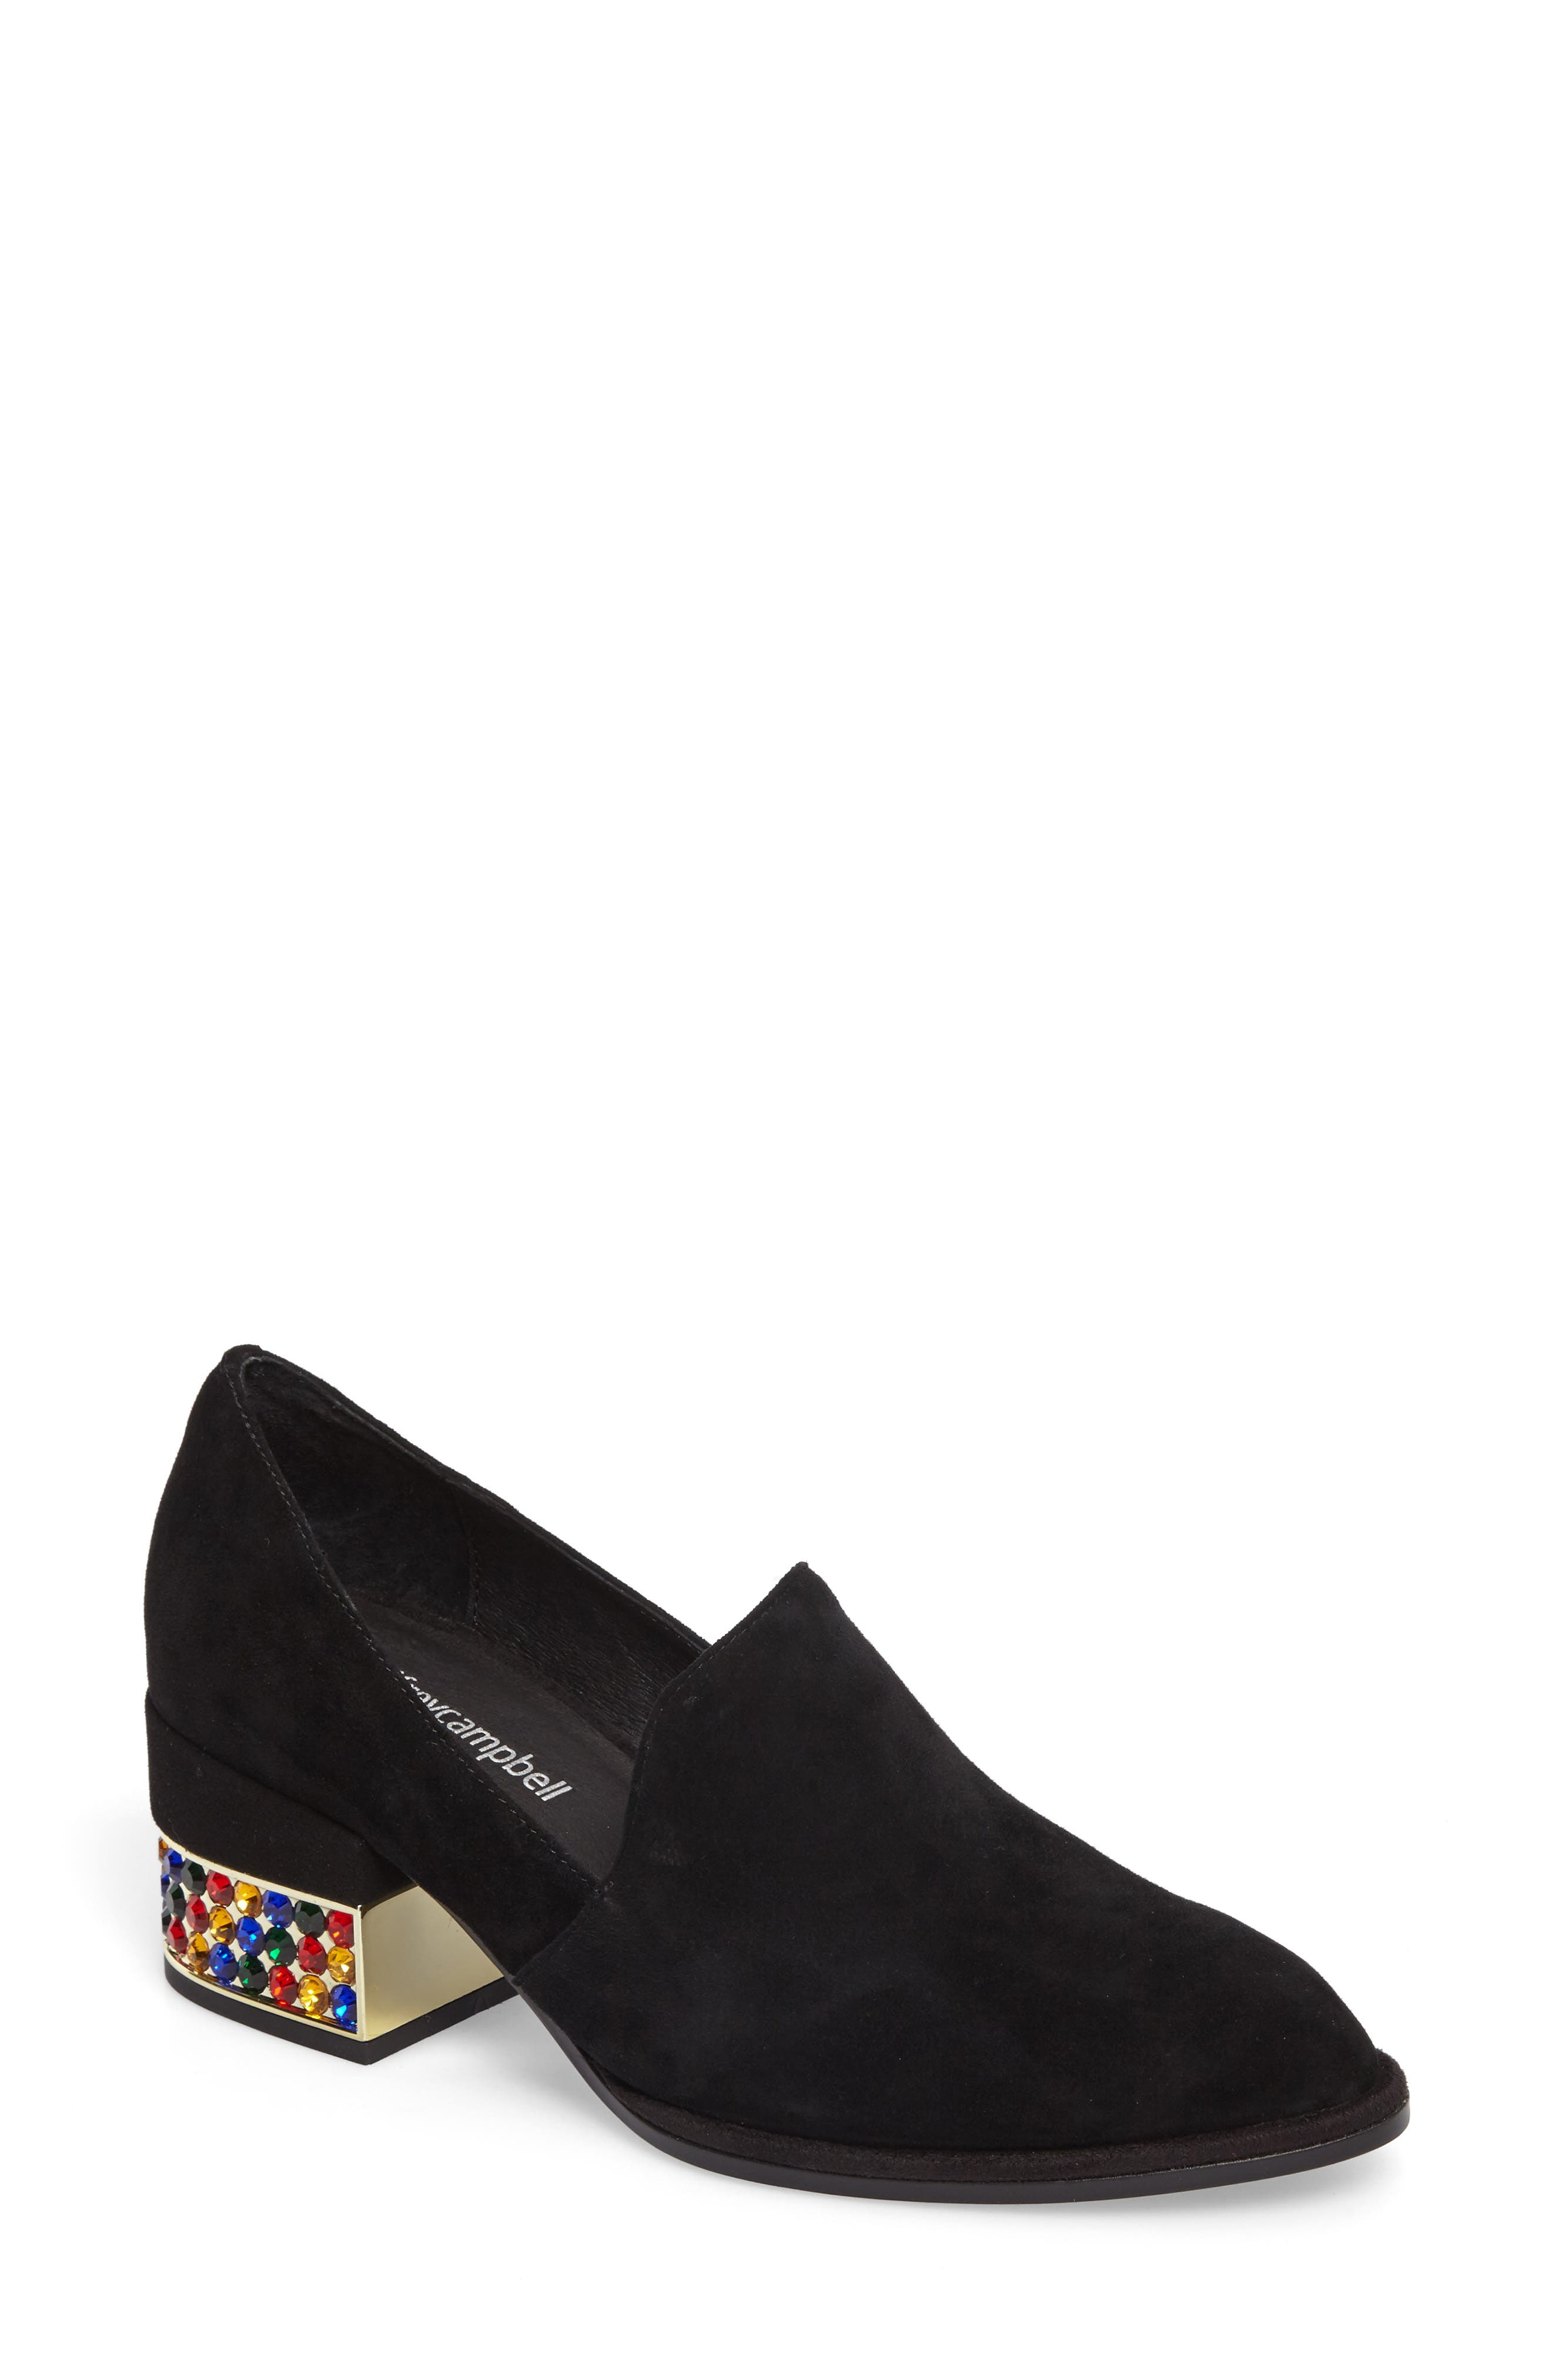 Serlin Jeweled Heel Loafer,                             Main thumbnail 1, color,                             Black Suede Bright Combo